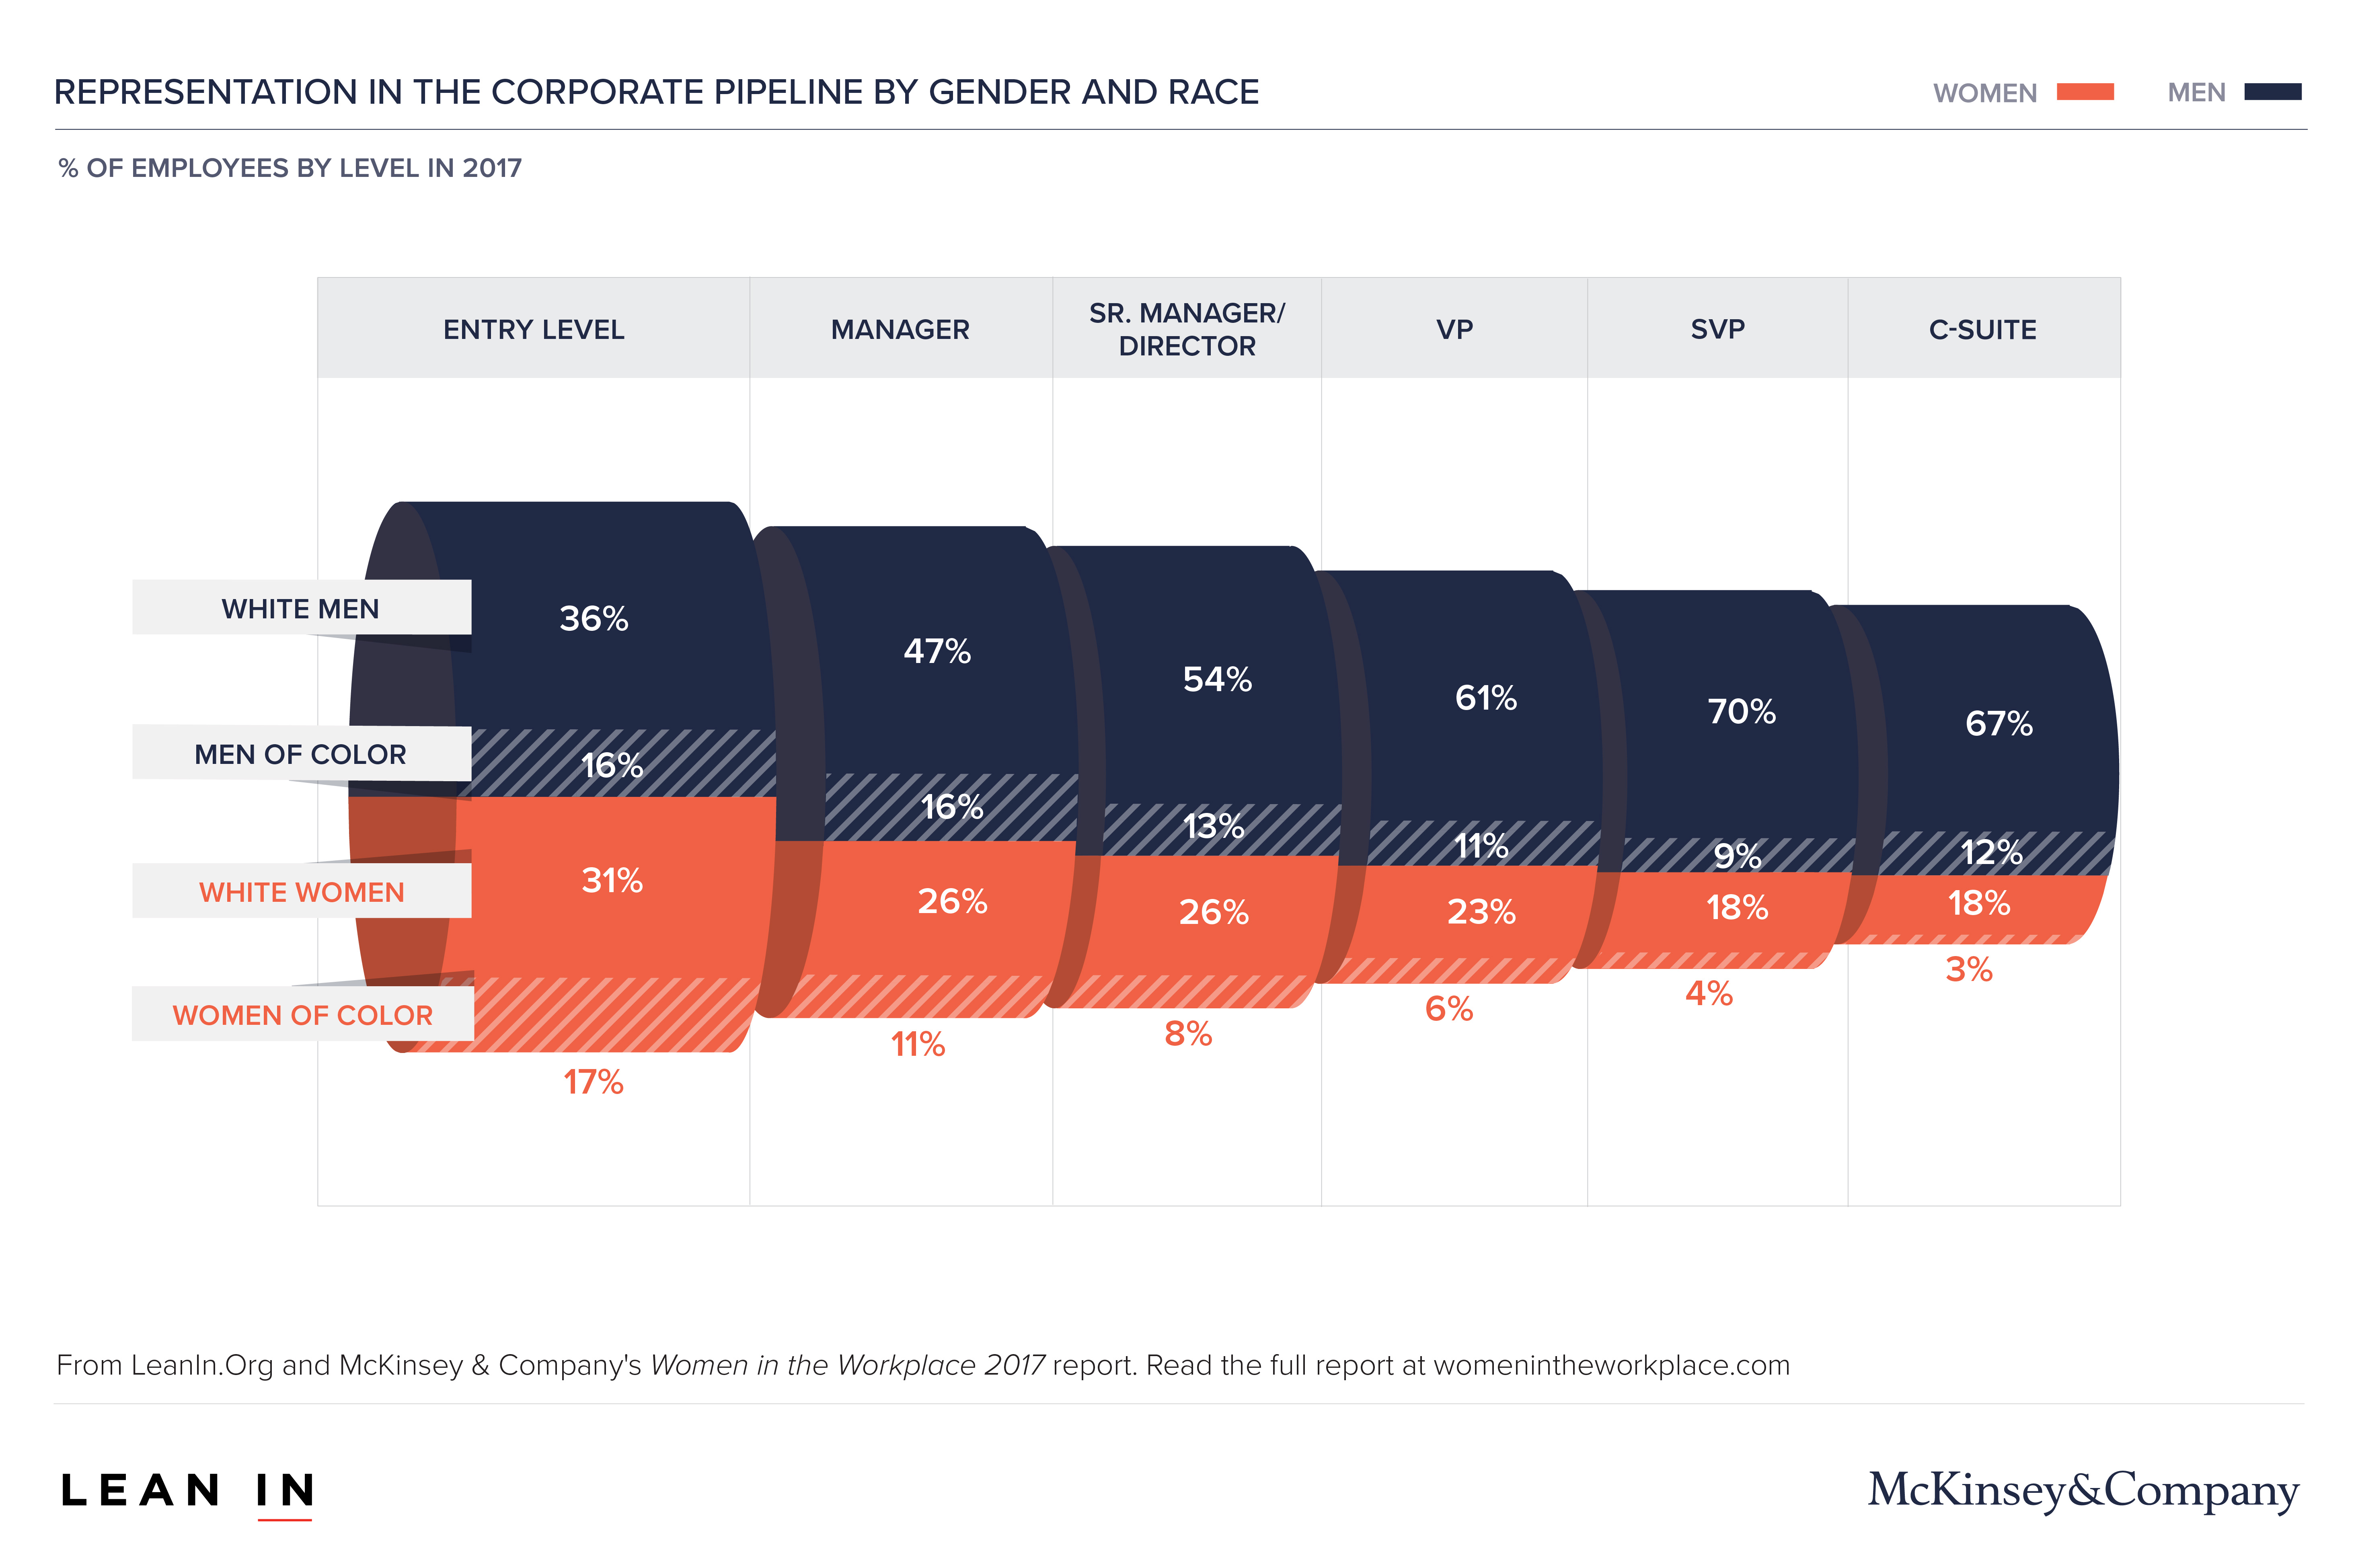 Women in the workplace corporate pipeline research